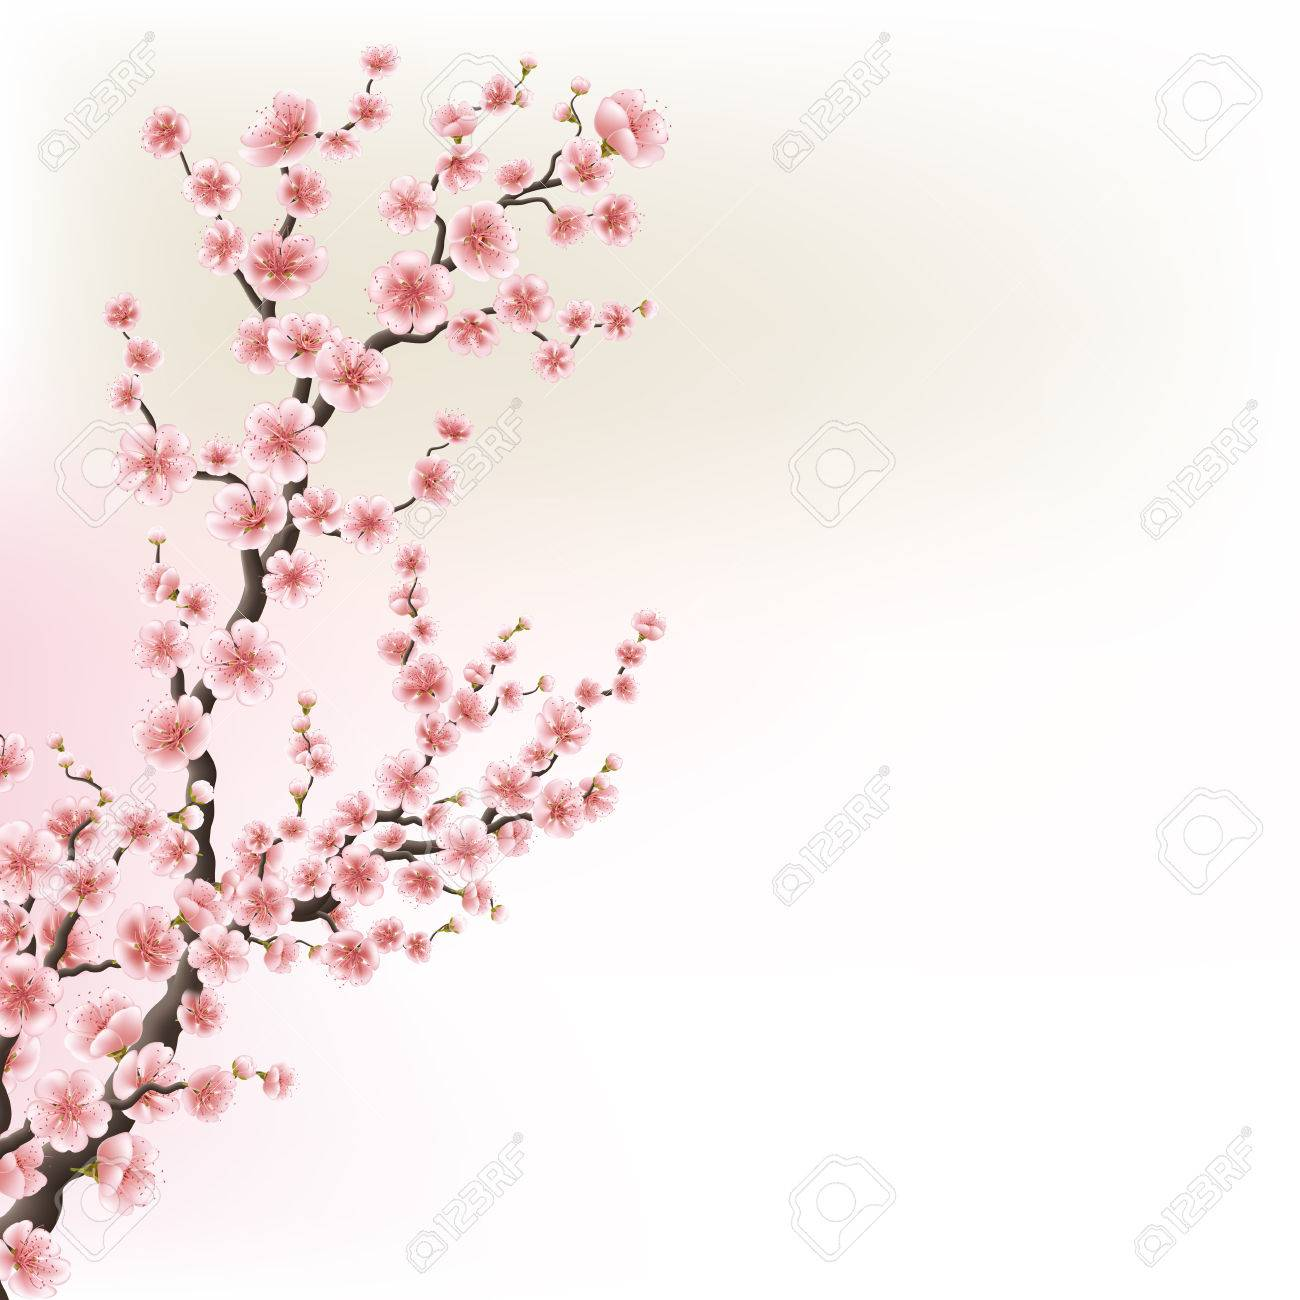 Blooming Cherry Blossom Branches card. EPS 10 - 69472979